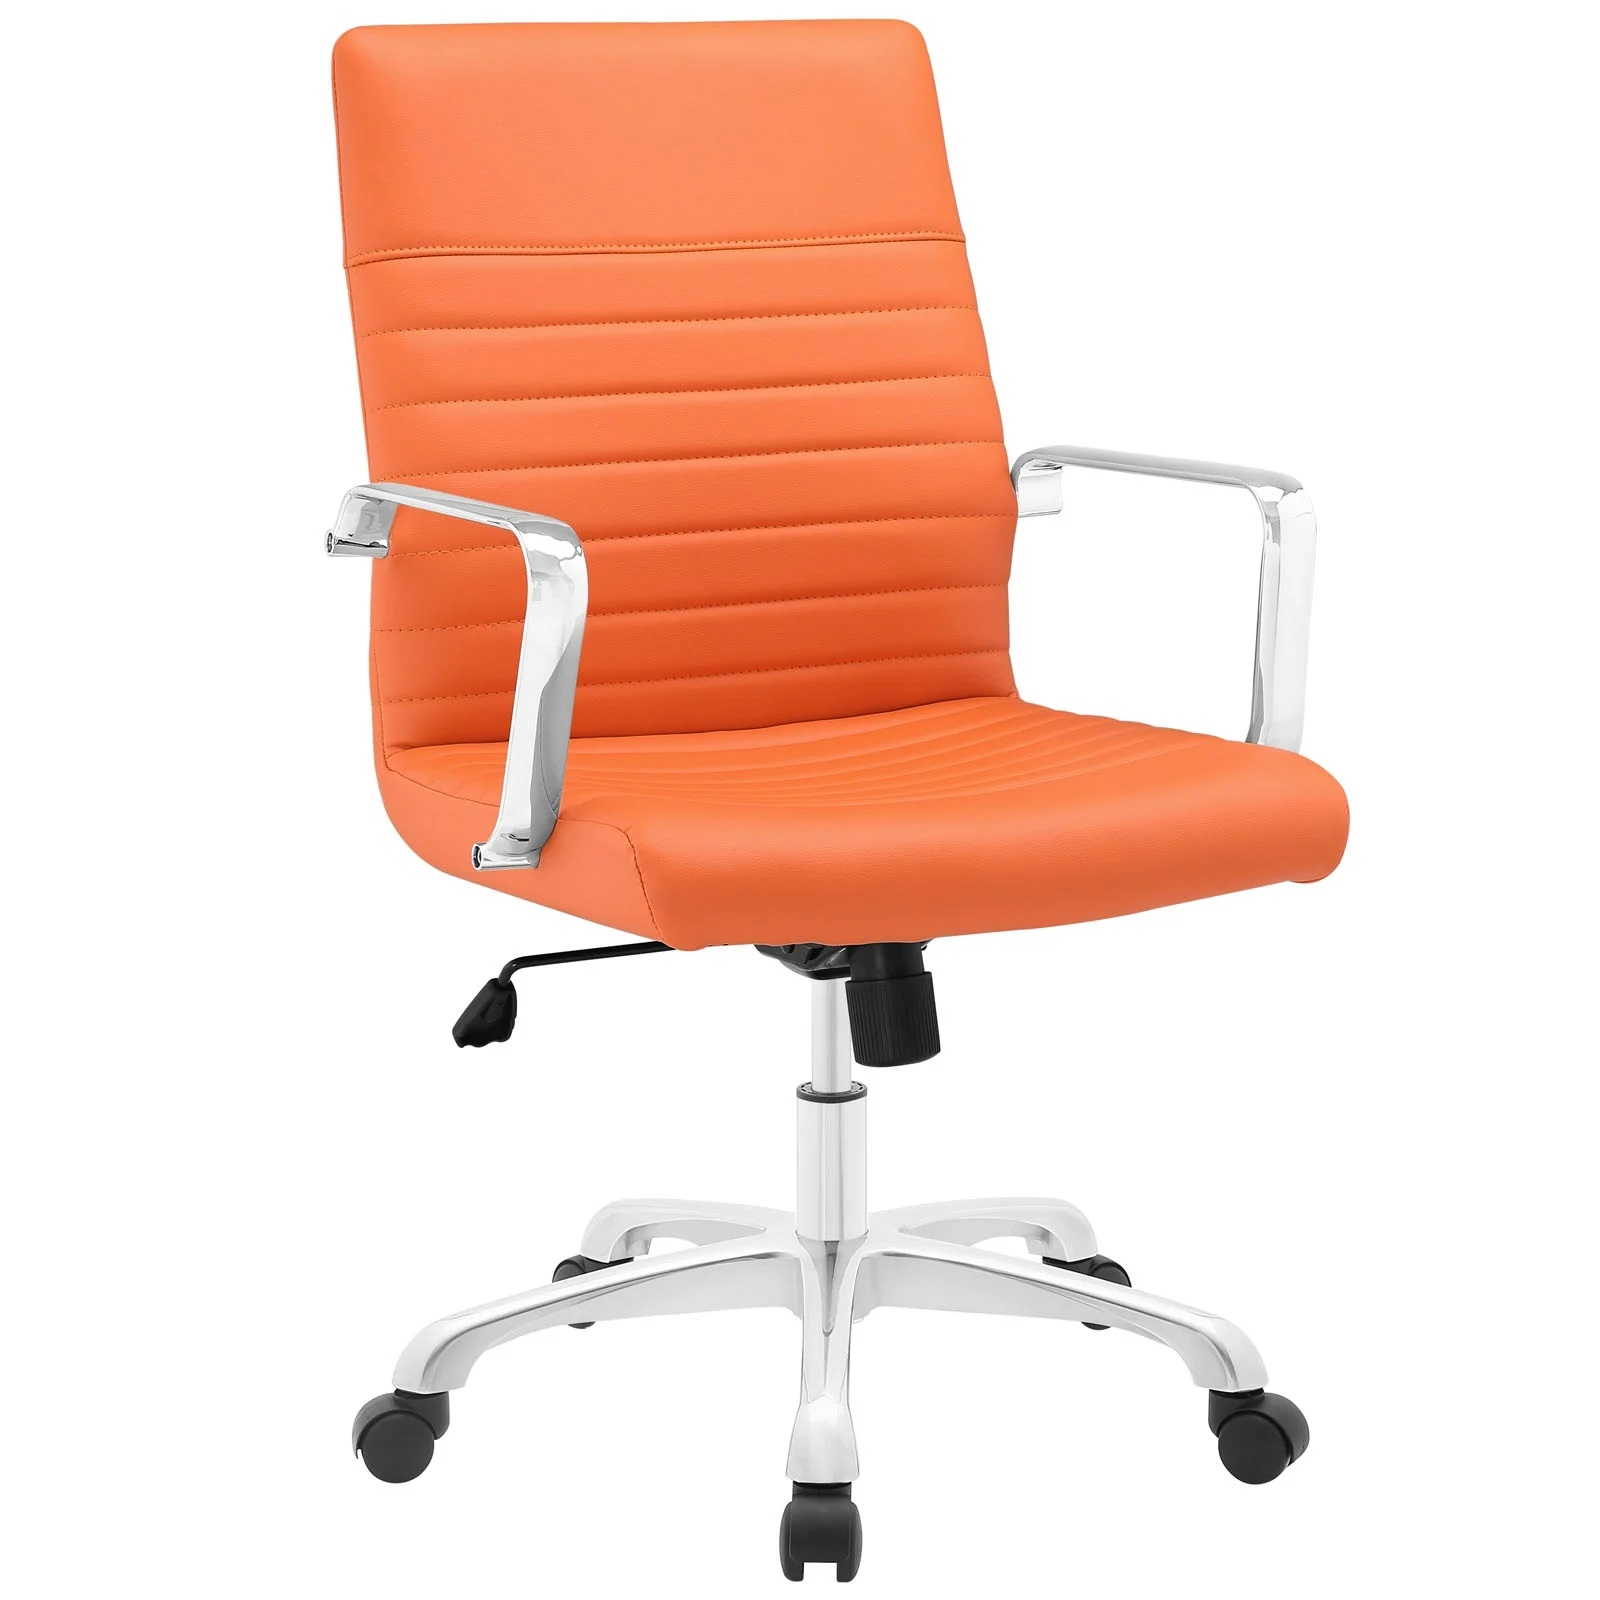 Mid Back Office Chair in Orange